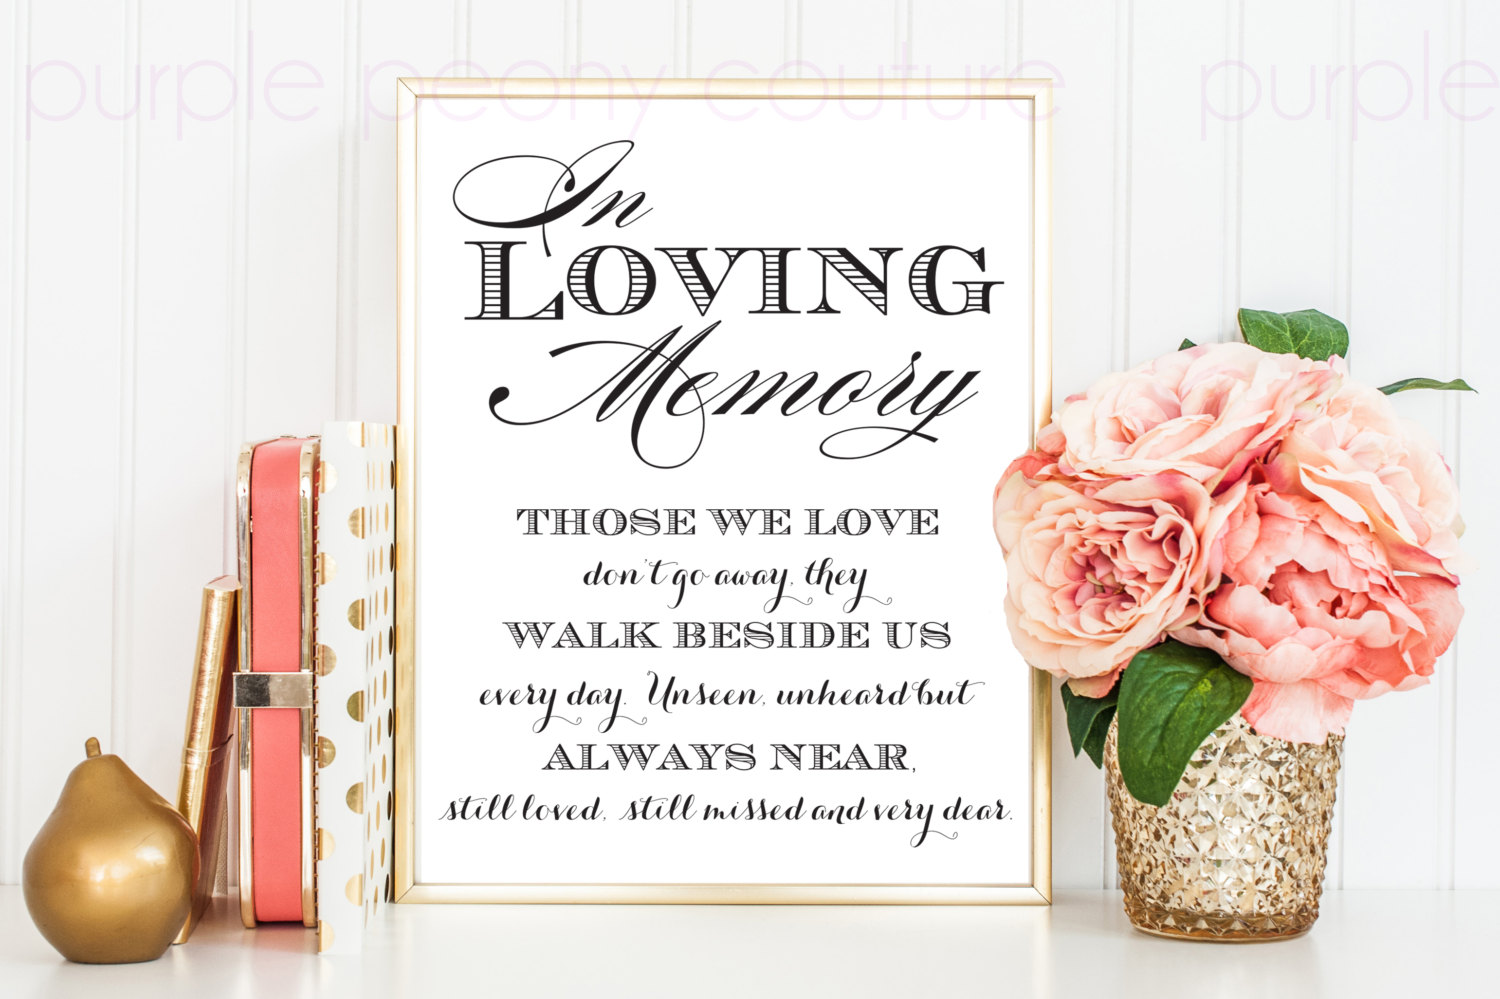 In Loving Memory Template Free Download from cdn.quotesgram.com